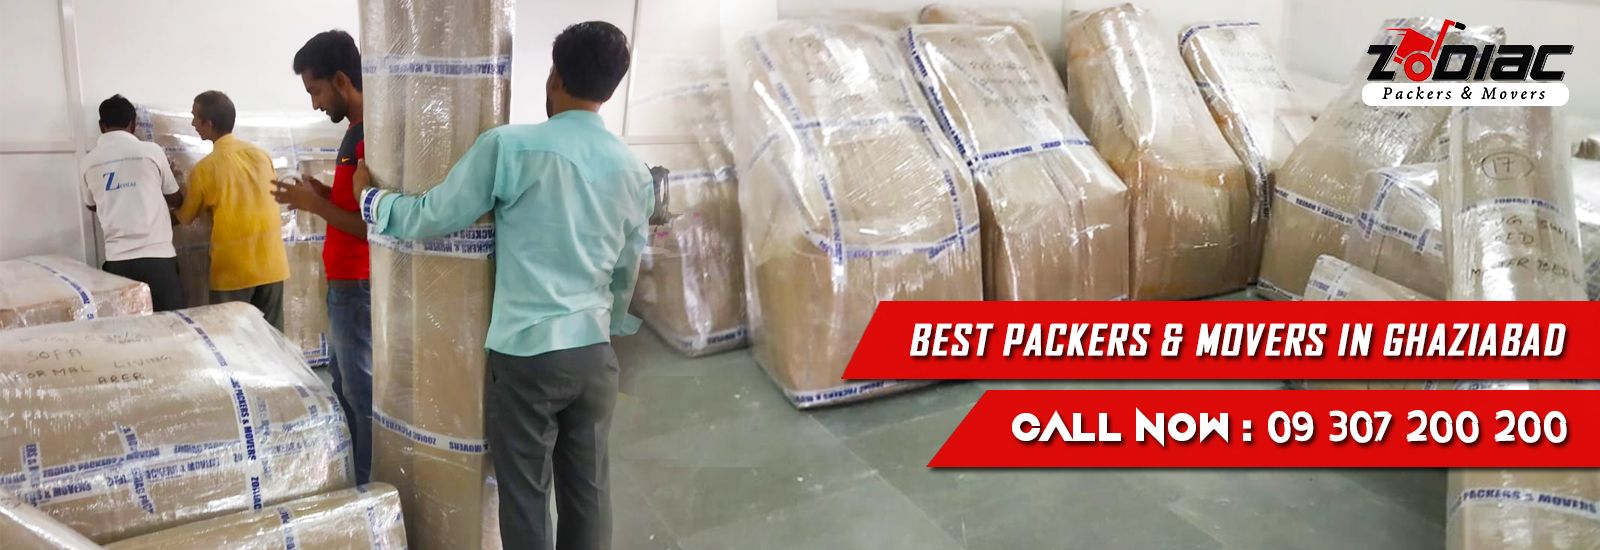 Packers and Movers in Ghaziabad